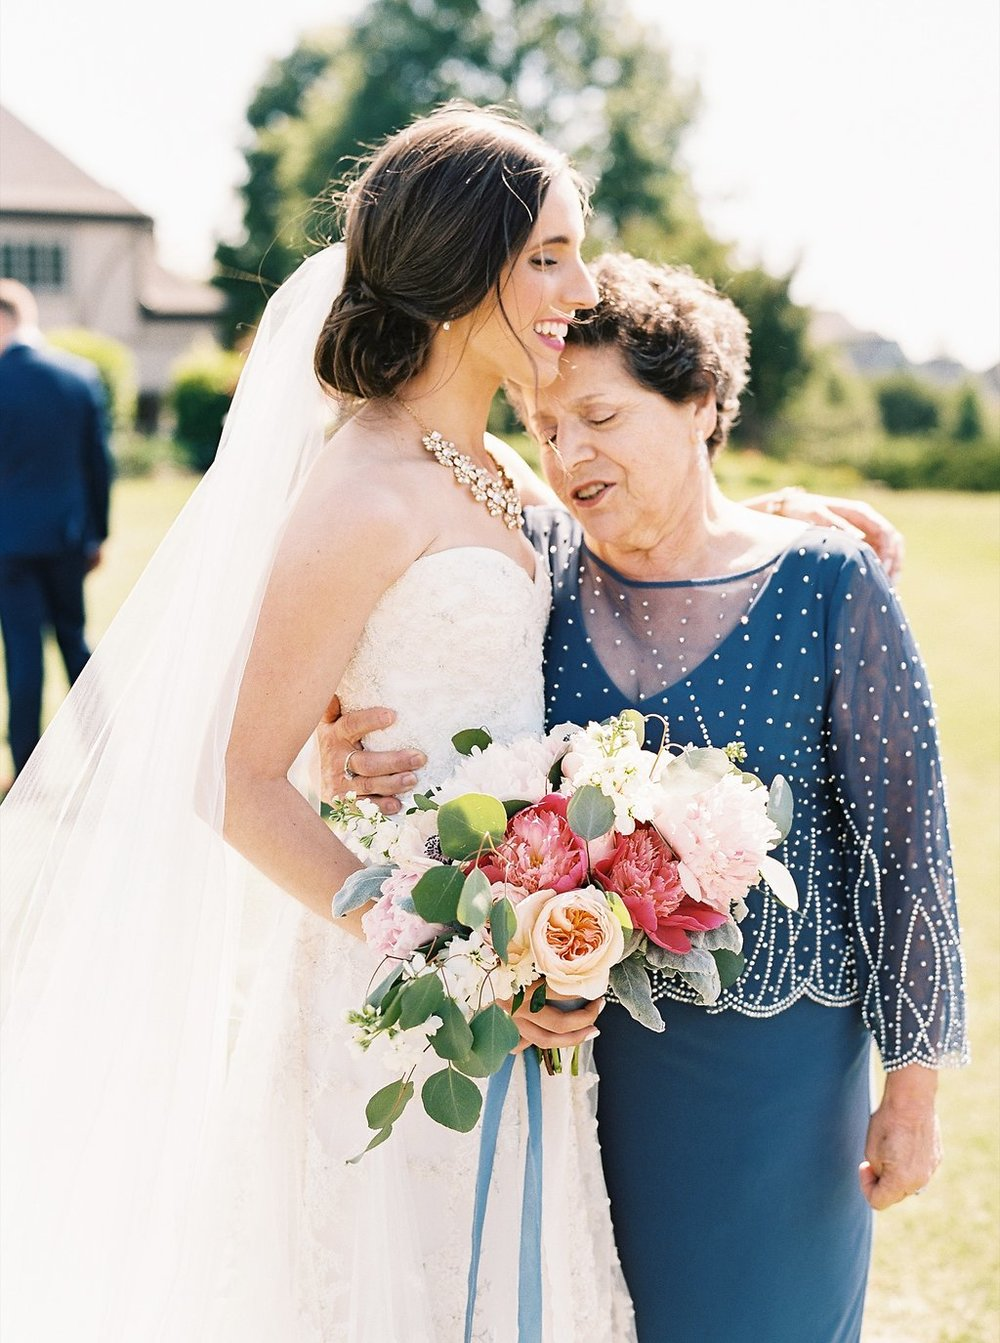 Bride and Grandma First Look | Blush and Navy Wedding with Fuchsia, French Blue and Gold Accents | Simply Jessica Marie's Southern Wedding | Photo by Perry Vaile Photography